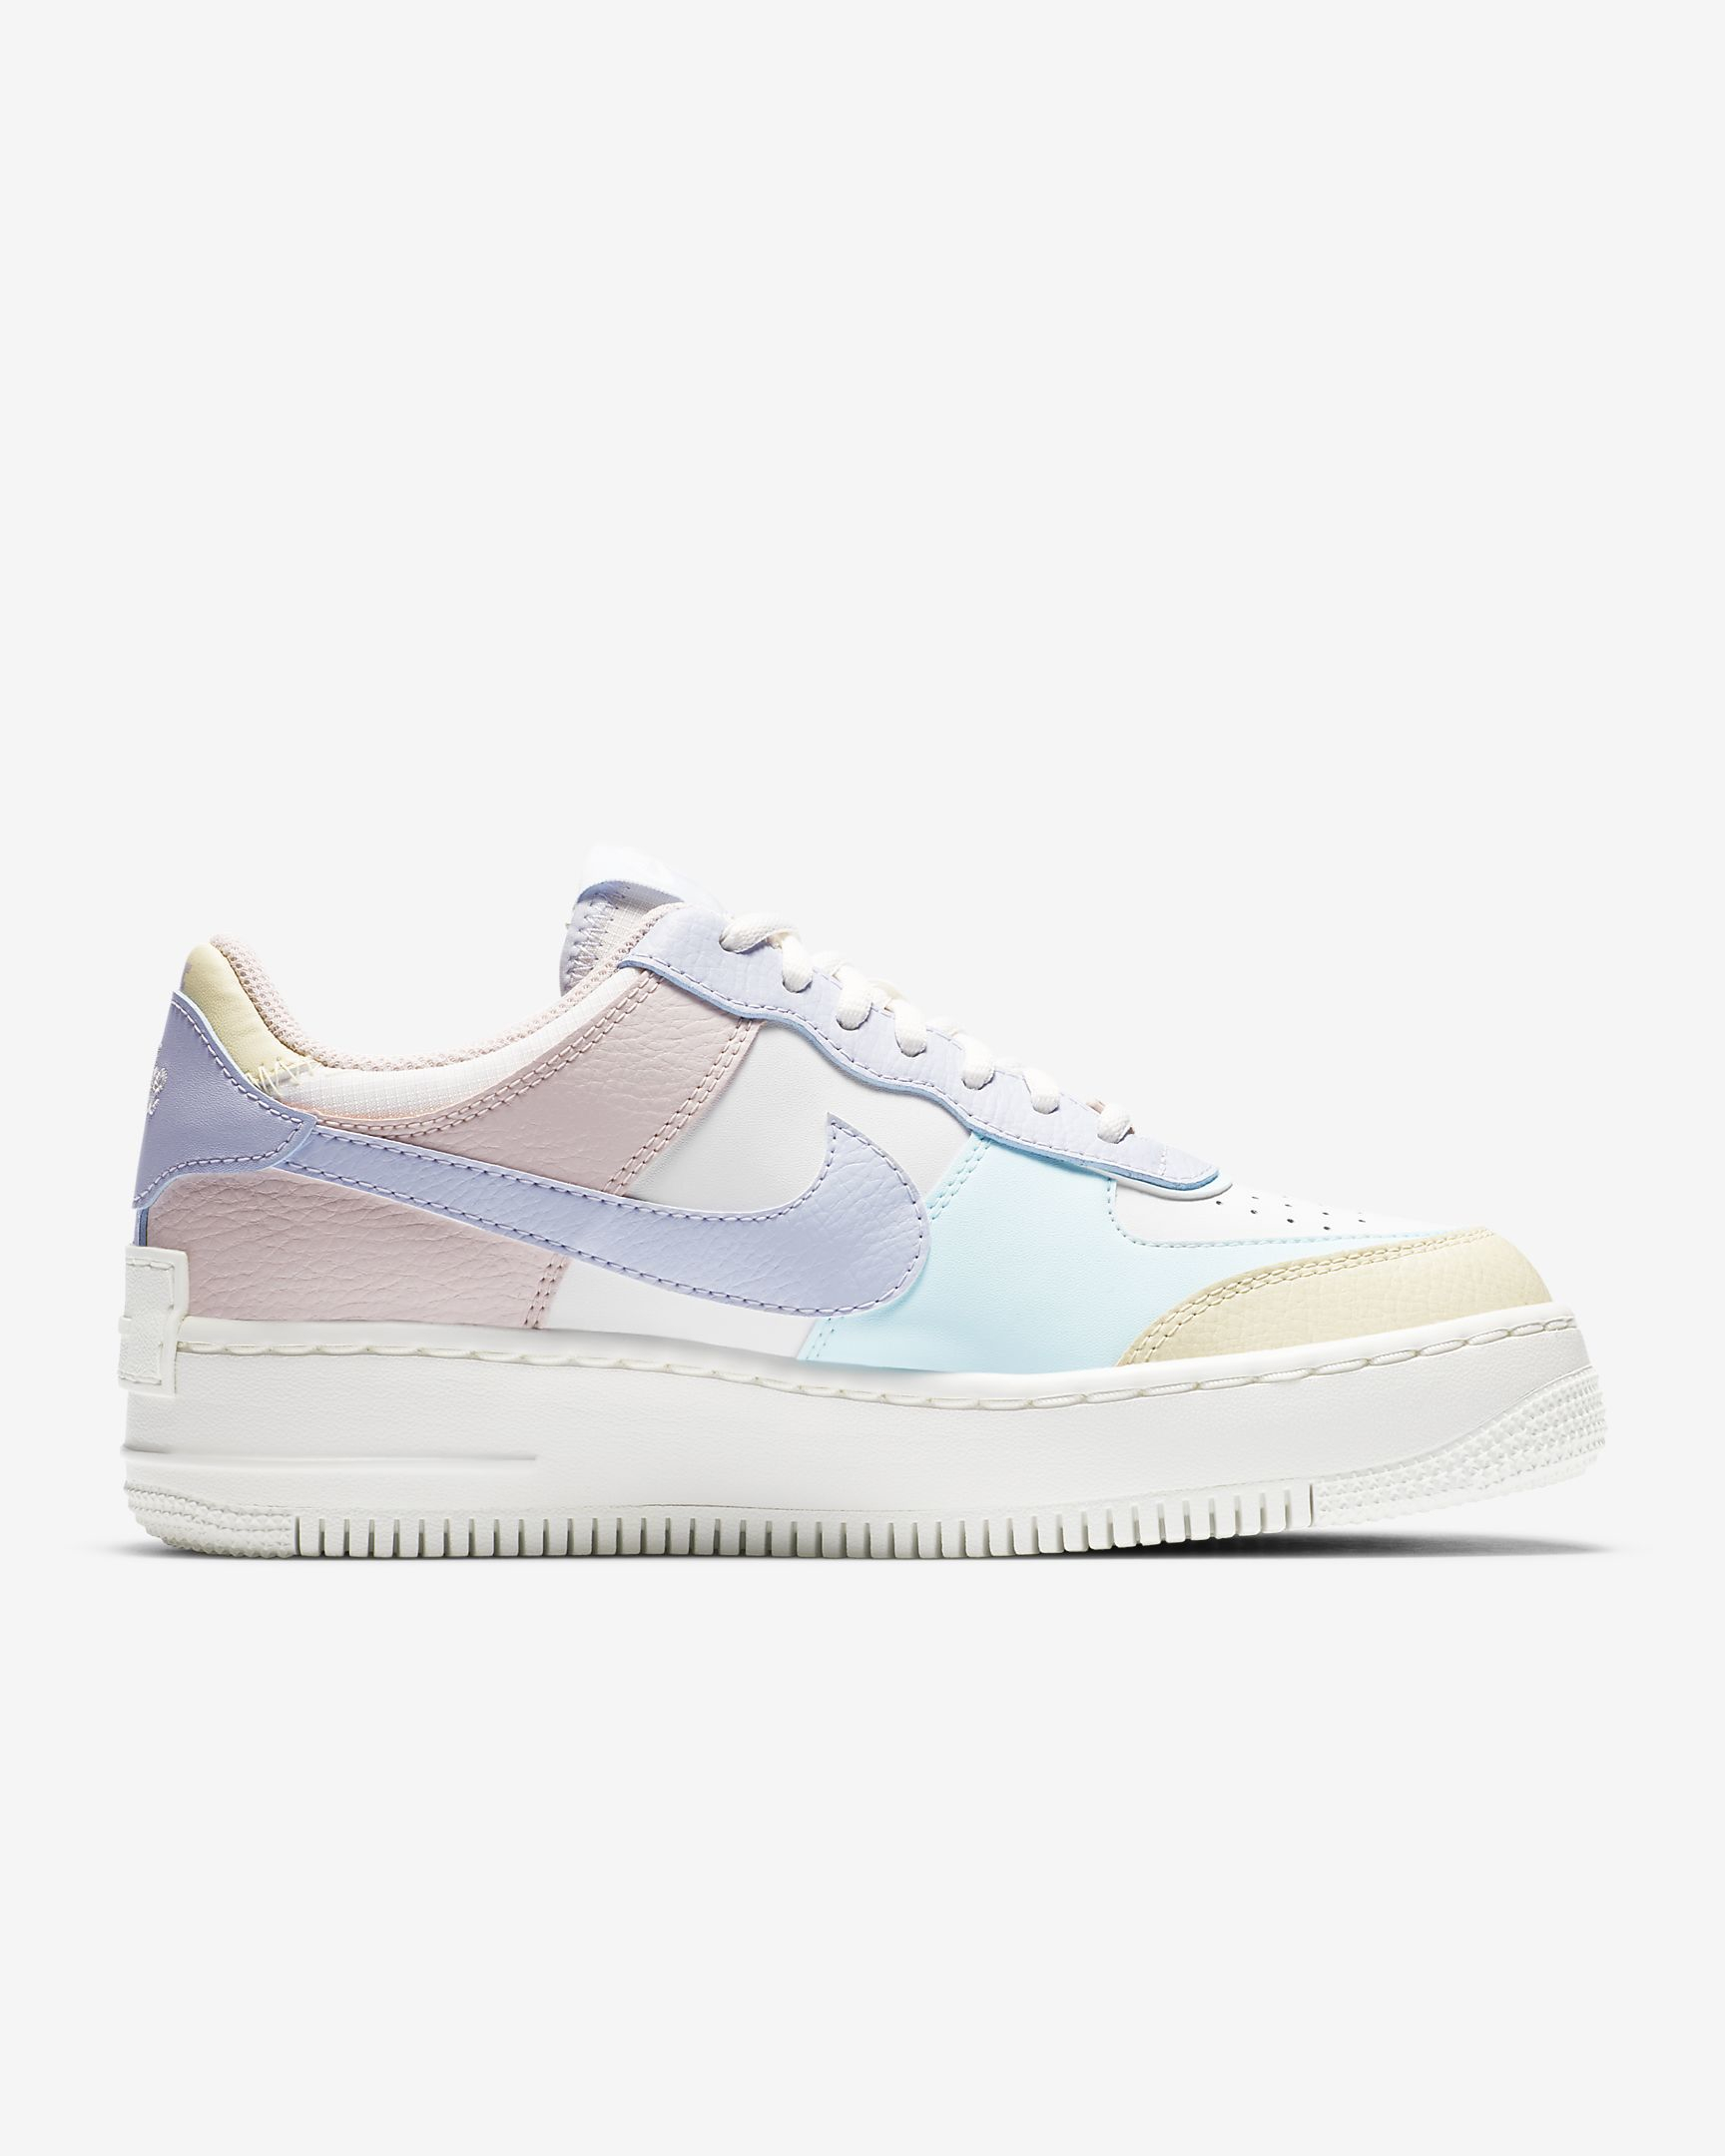 Nike WMNS Air Force 1 Shadow ''Pastel'' - CI0919-106 - Sneaker Style